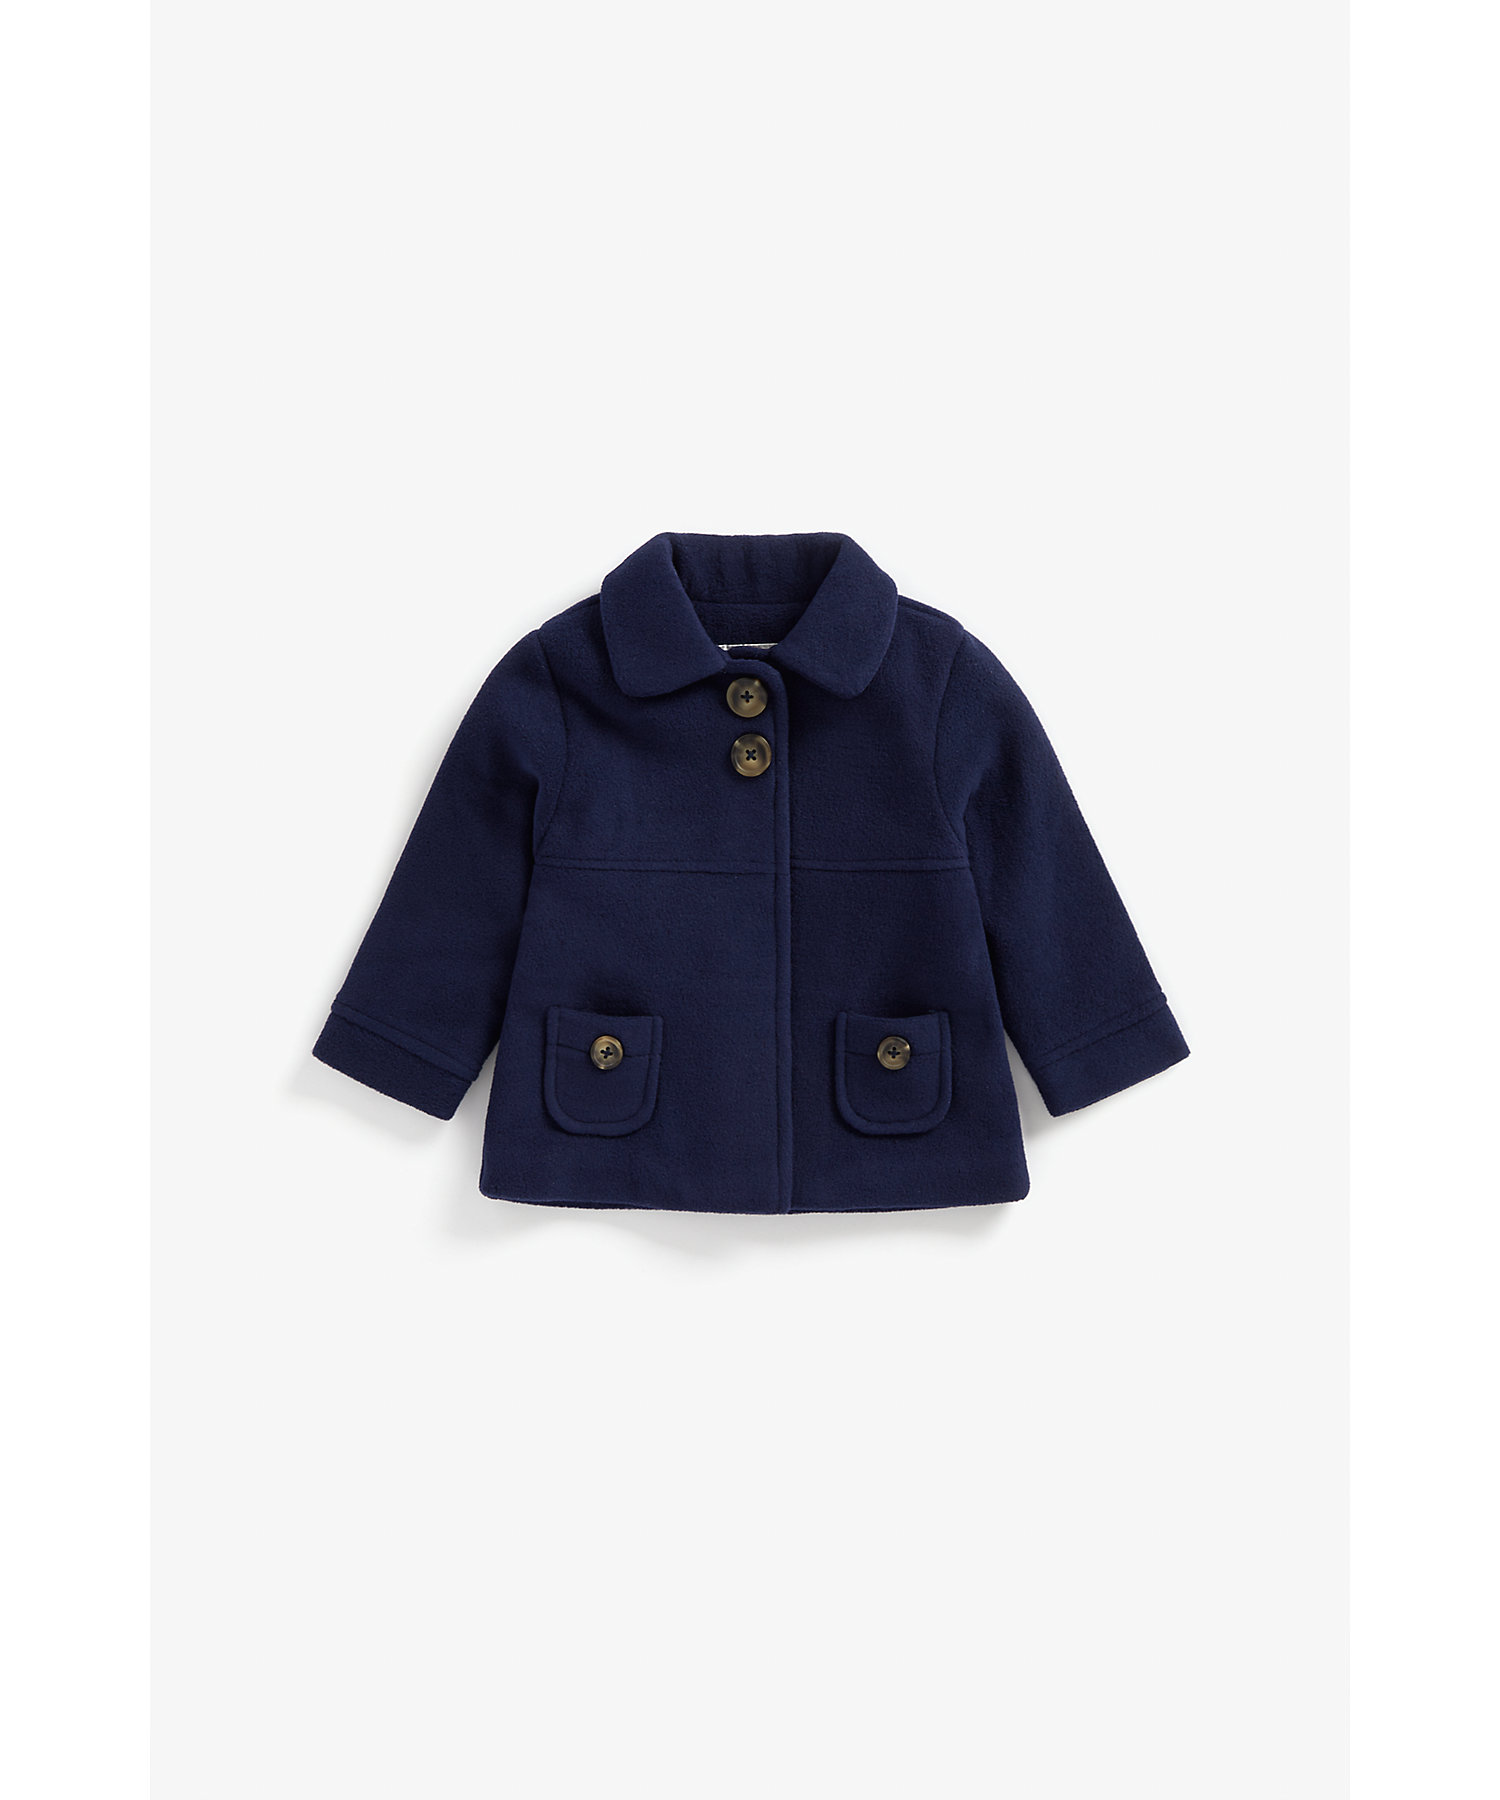 Mothercare | Girls Full Sleeves Coat With Pocket Detail - Navy